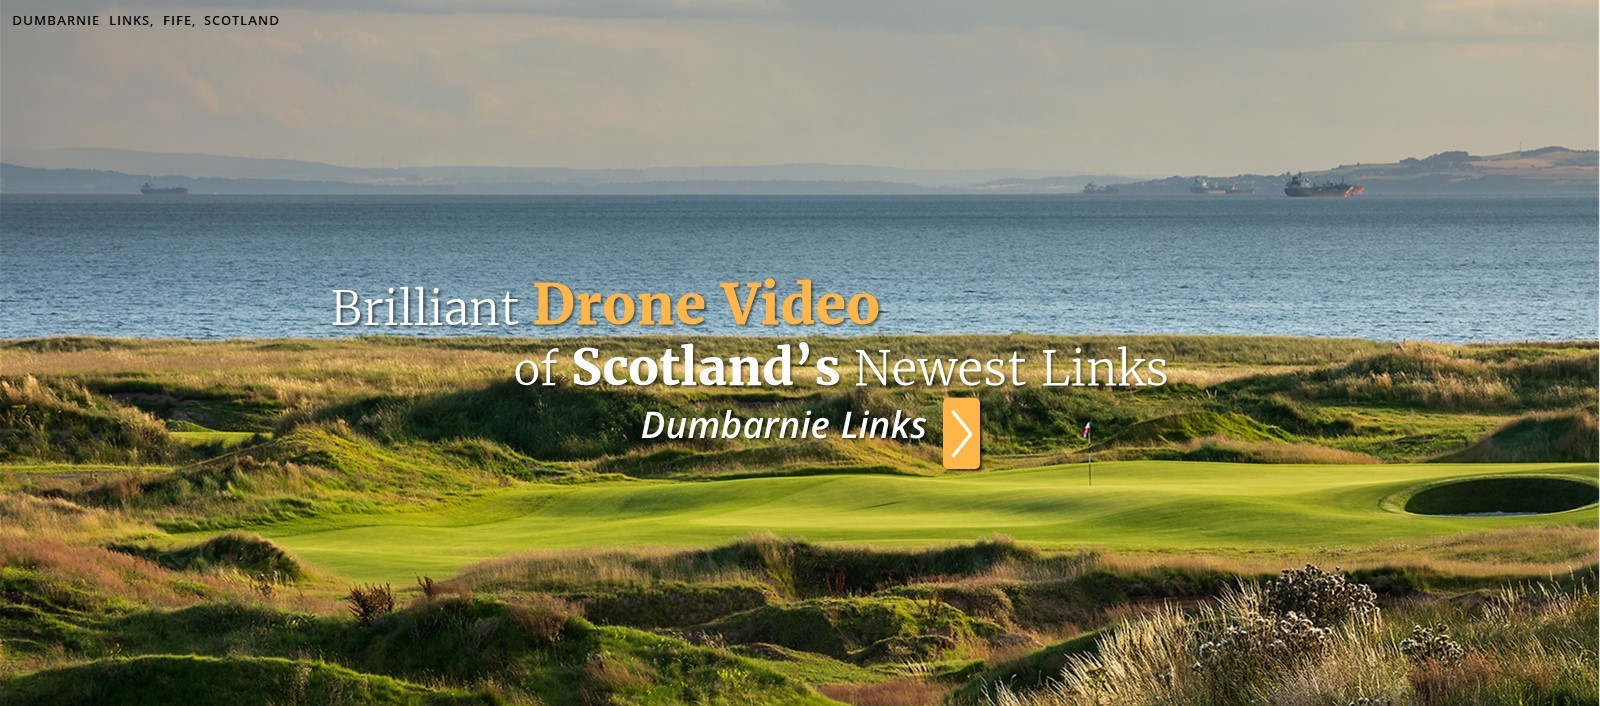 Watch VIDEO: Brilliant Drone Footage of Scotland's Newest Links Course, Dumbarnie Links - PerryGolf.com